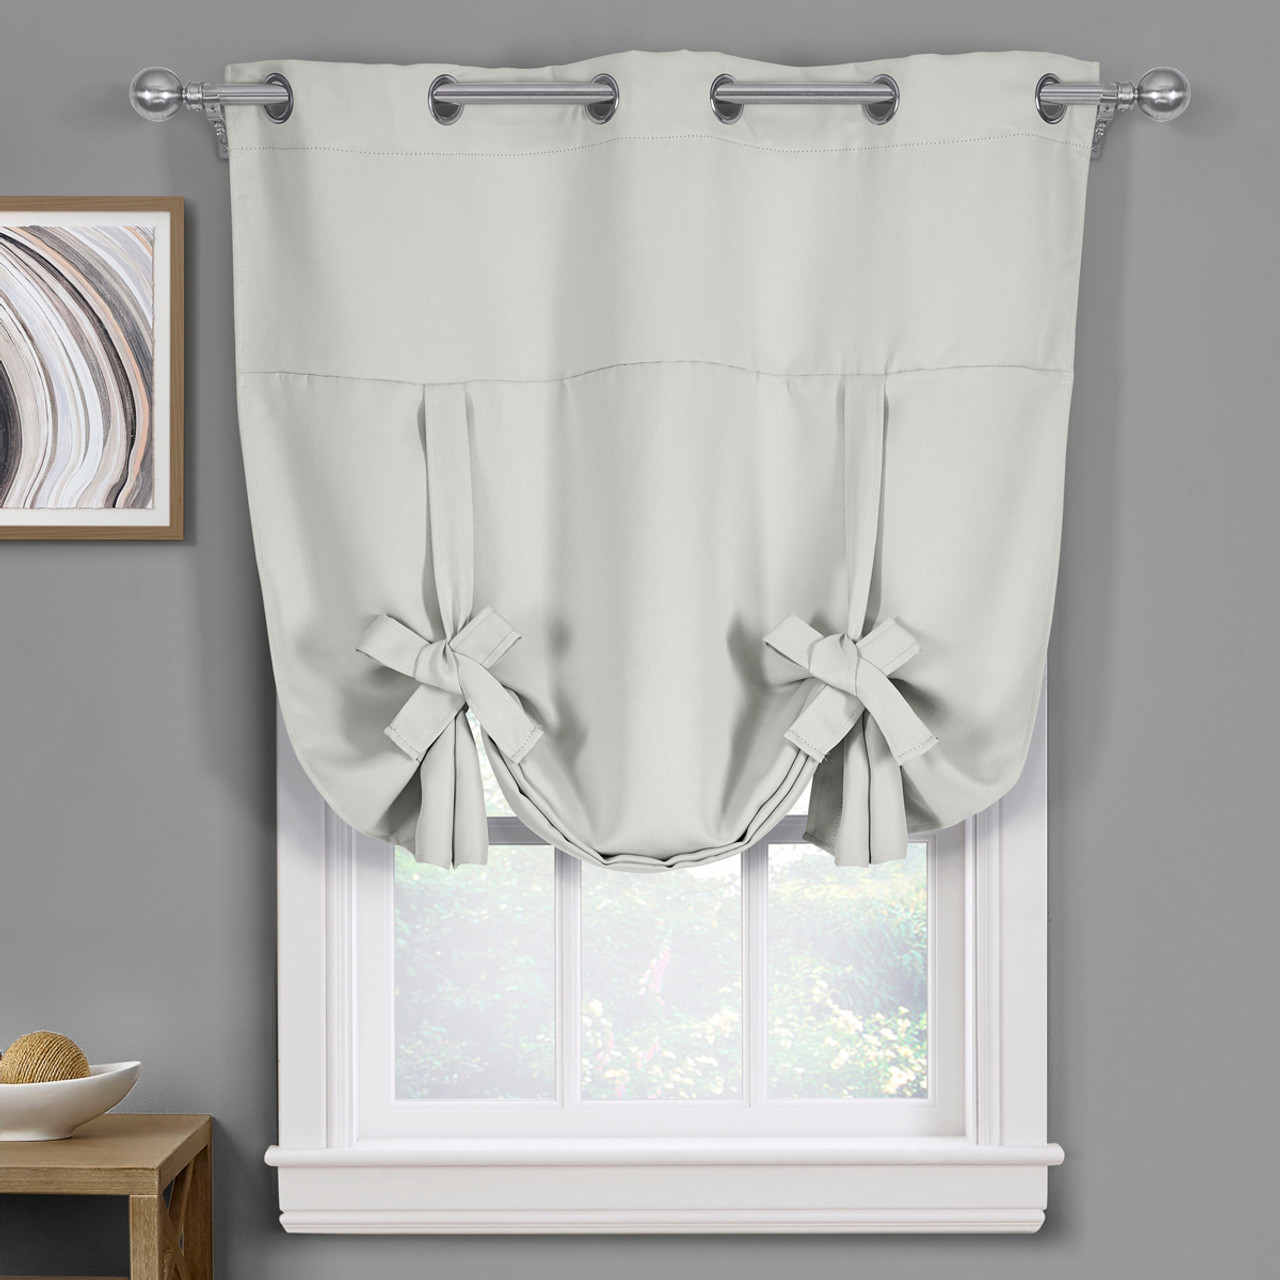 White Ava Blackout Weave Curtains Grommet Tie Up